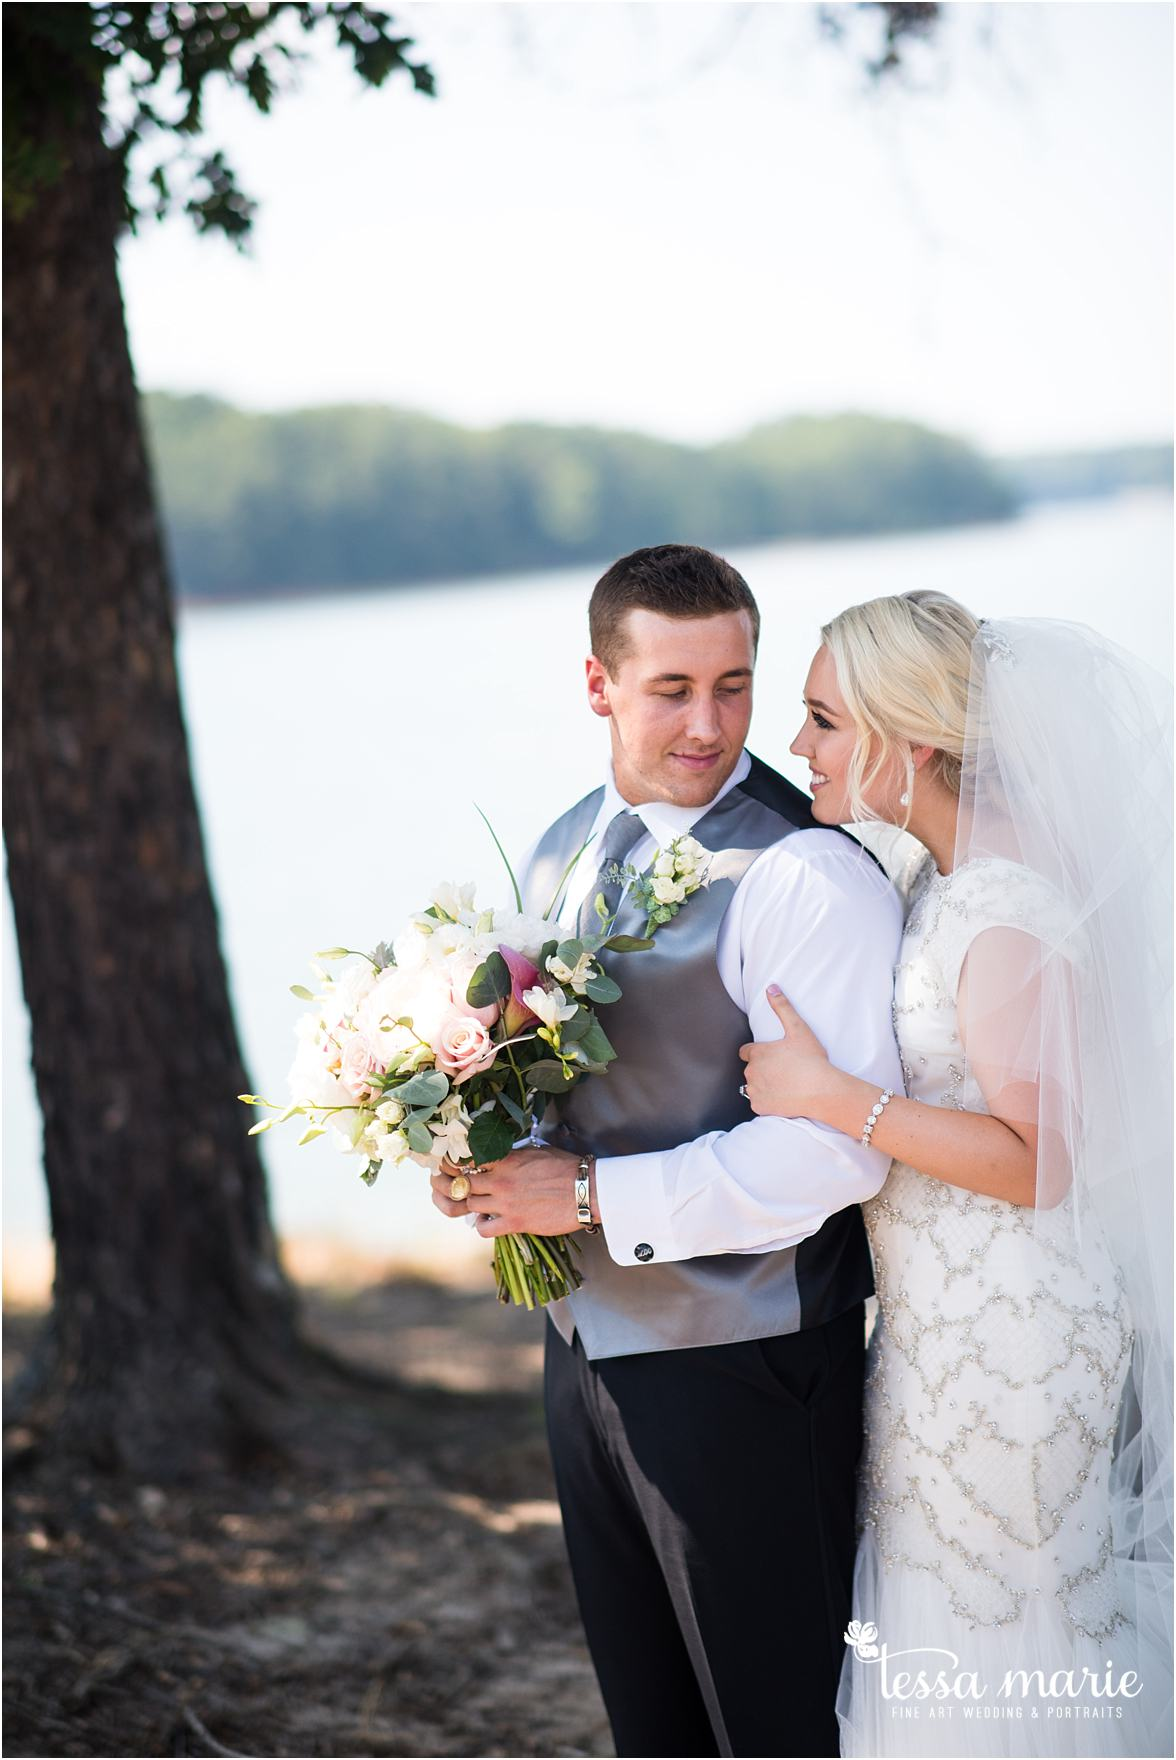 lake_lanier_wedding_summer_pictures_legacy_moments_family_candid_atlantas_best_wedding_photographer_tessa_marie_weddings_lake_lanier_bride_out_door_wedding_0114